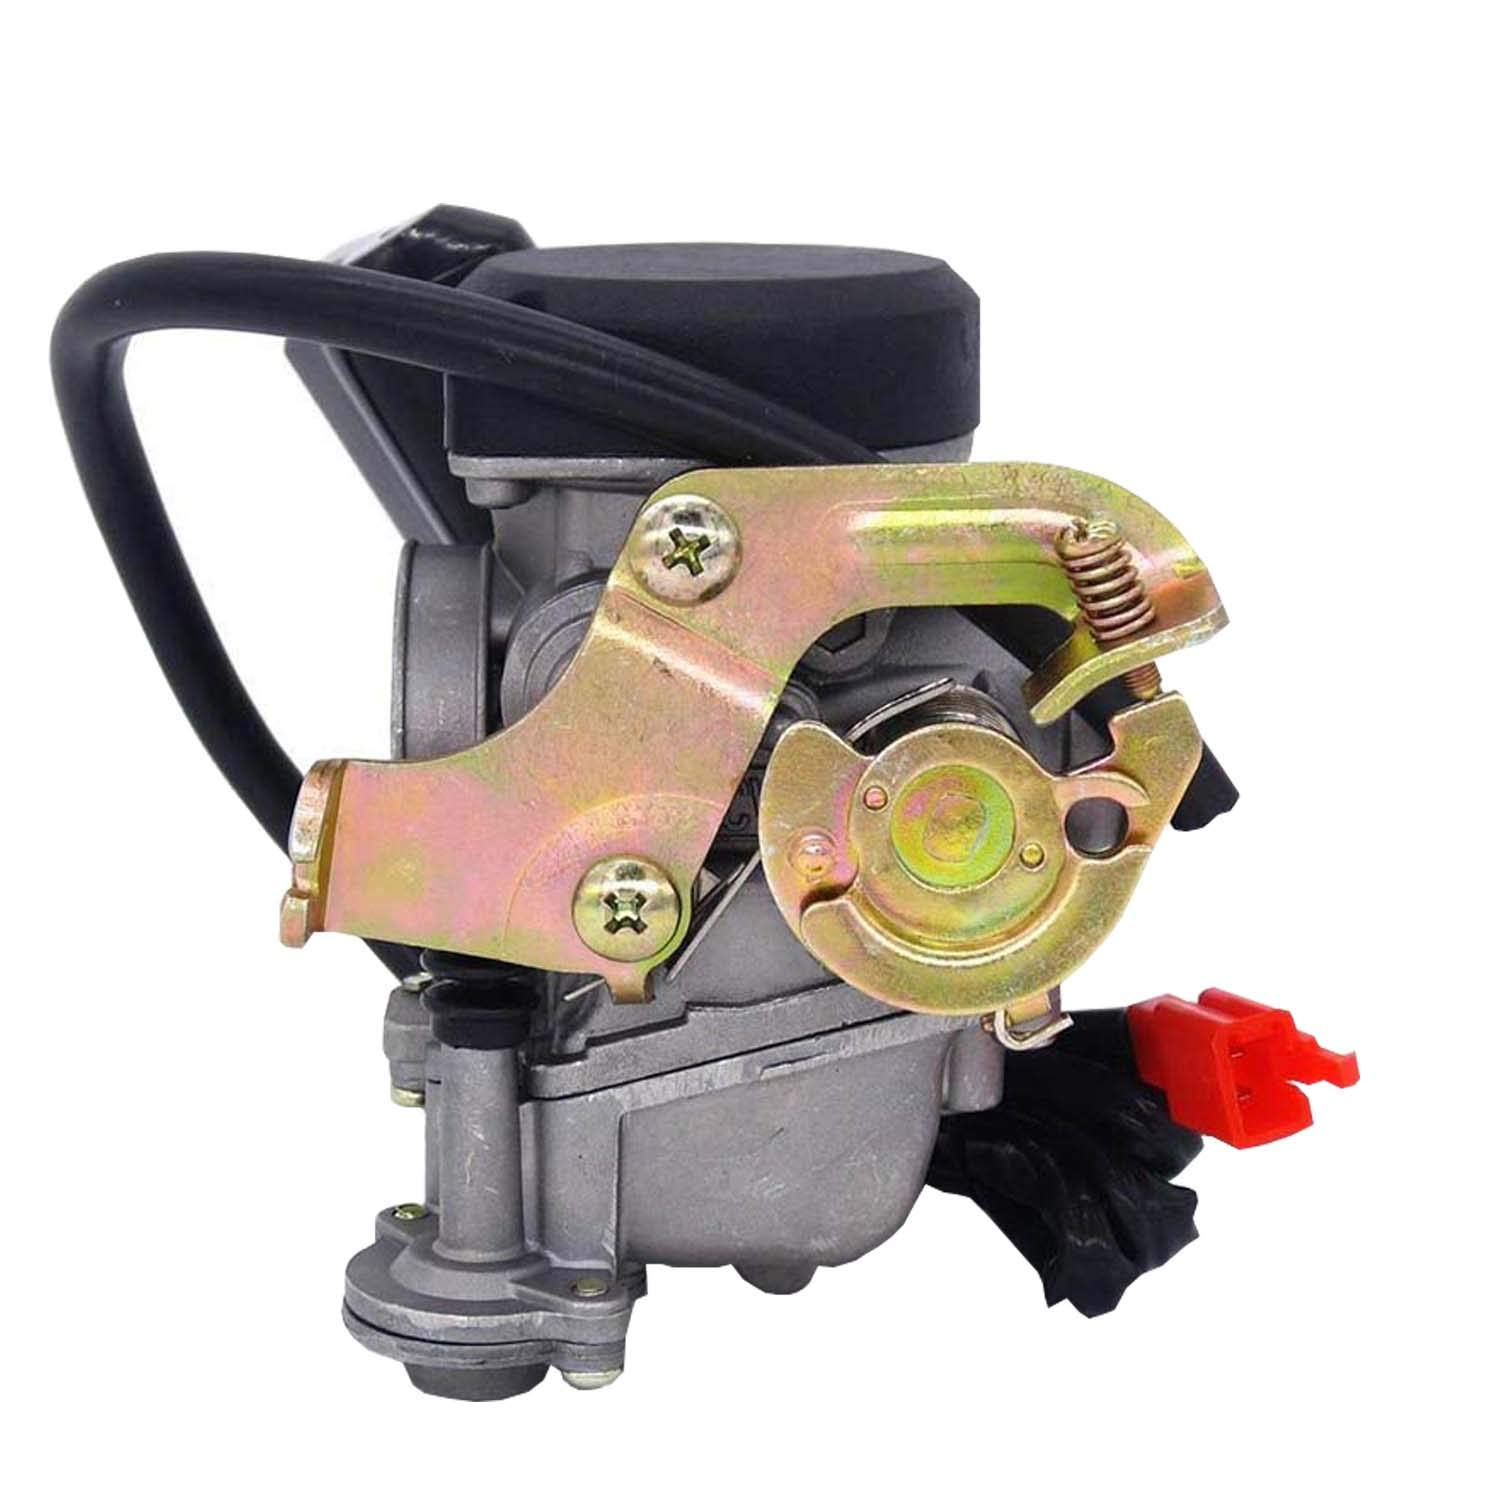 Parts Club 49cc Scooter Carburetor GY6 Four Stroke with Jet Upgrades Scooter Moped ATV